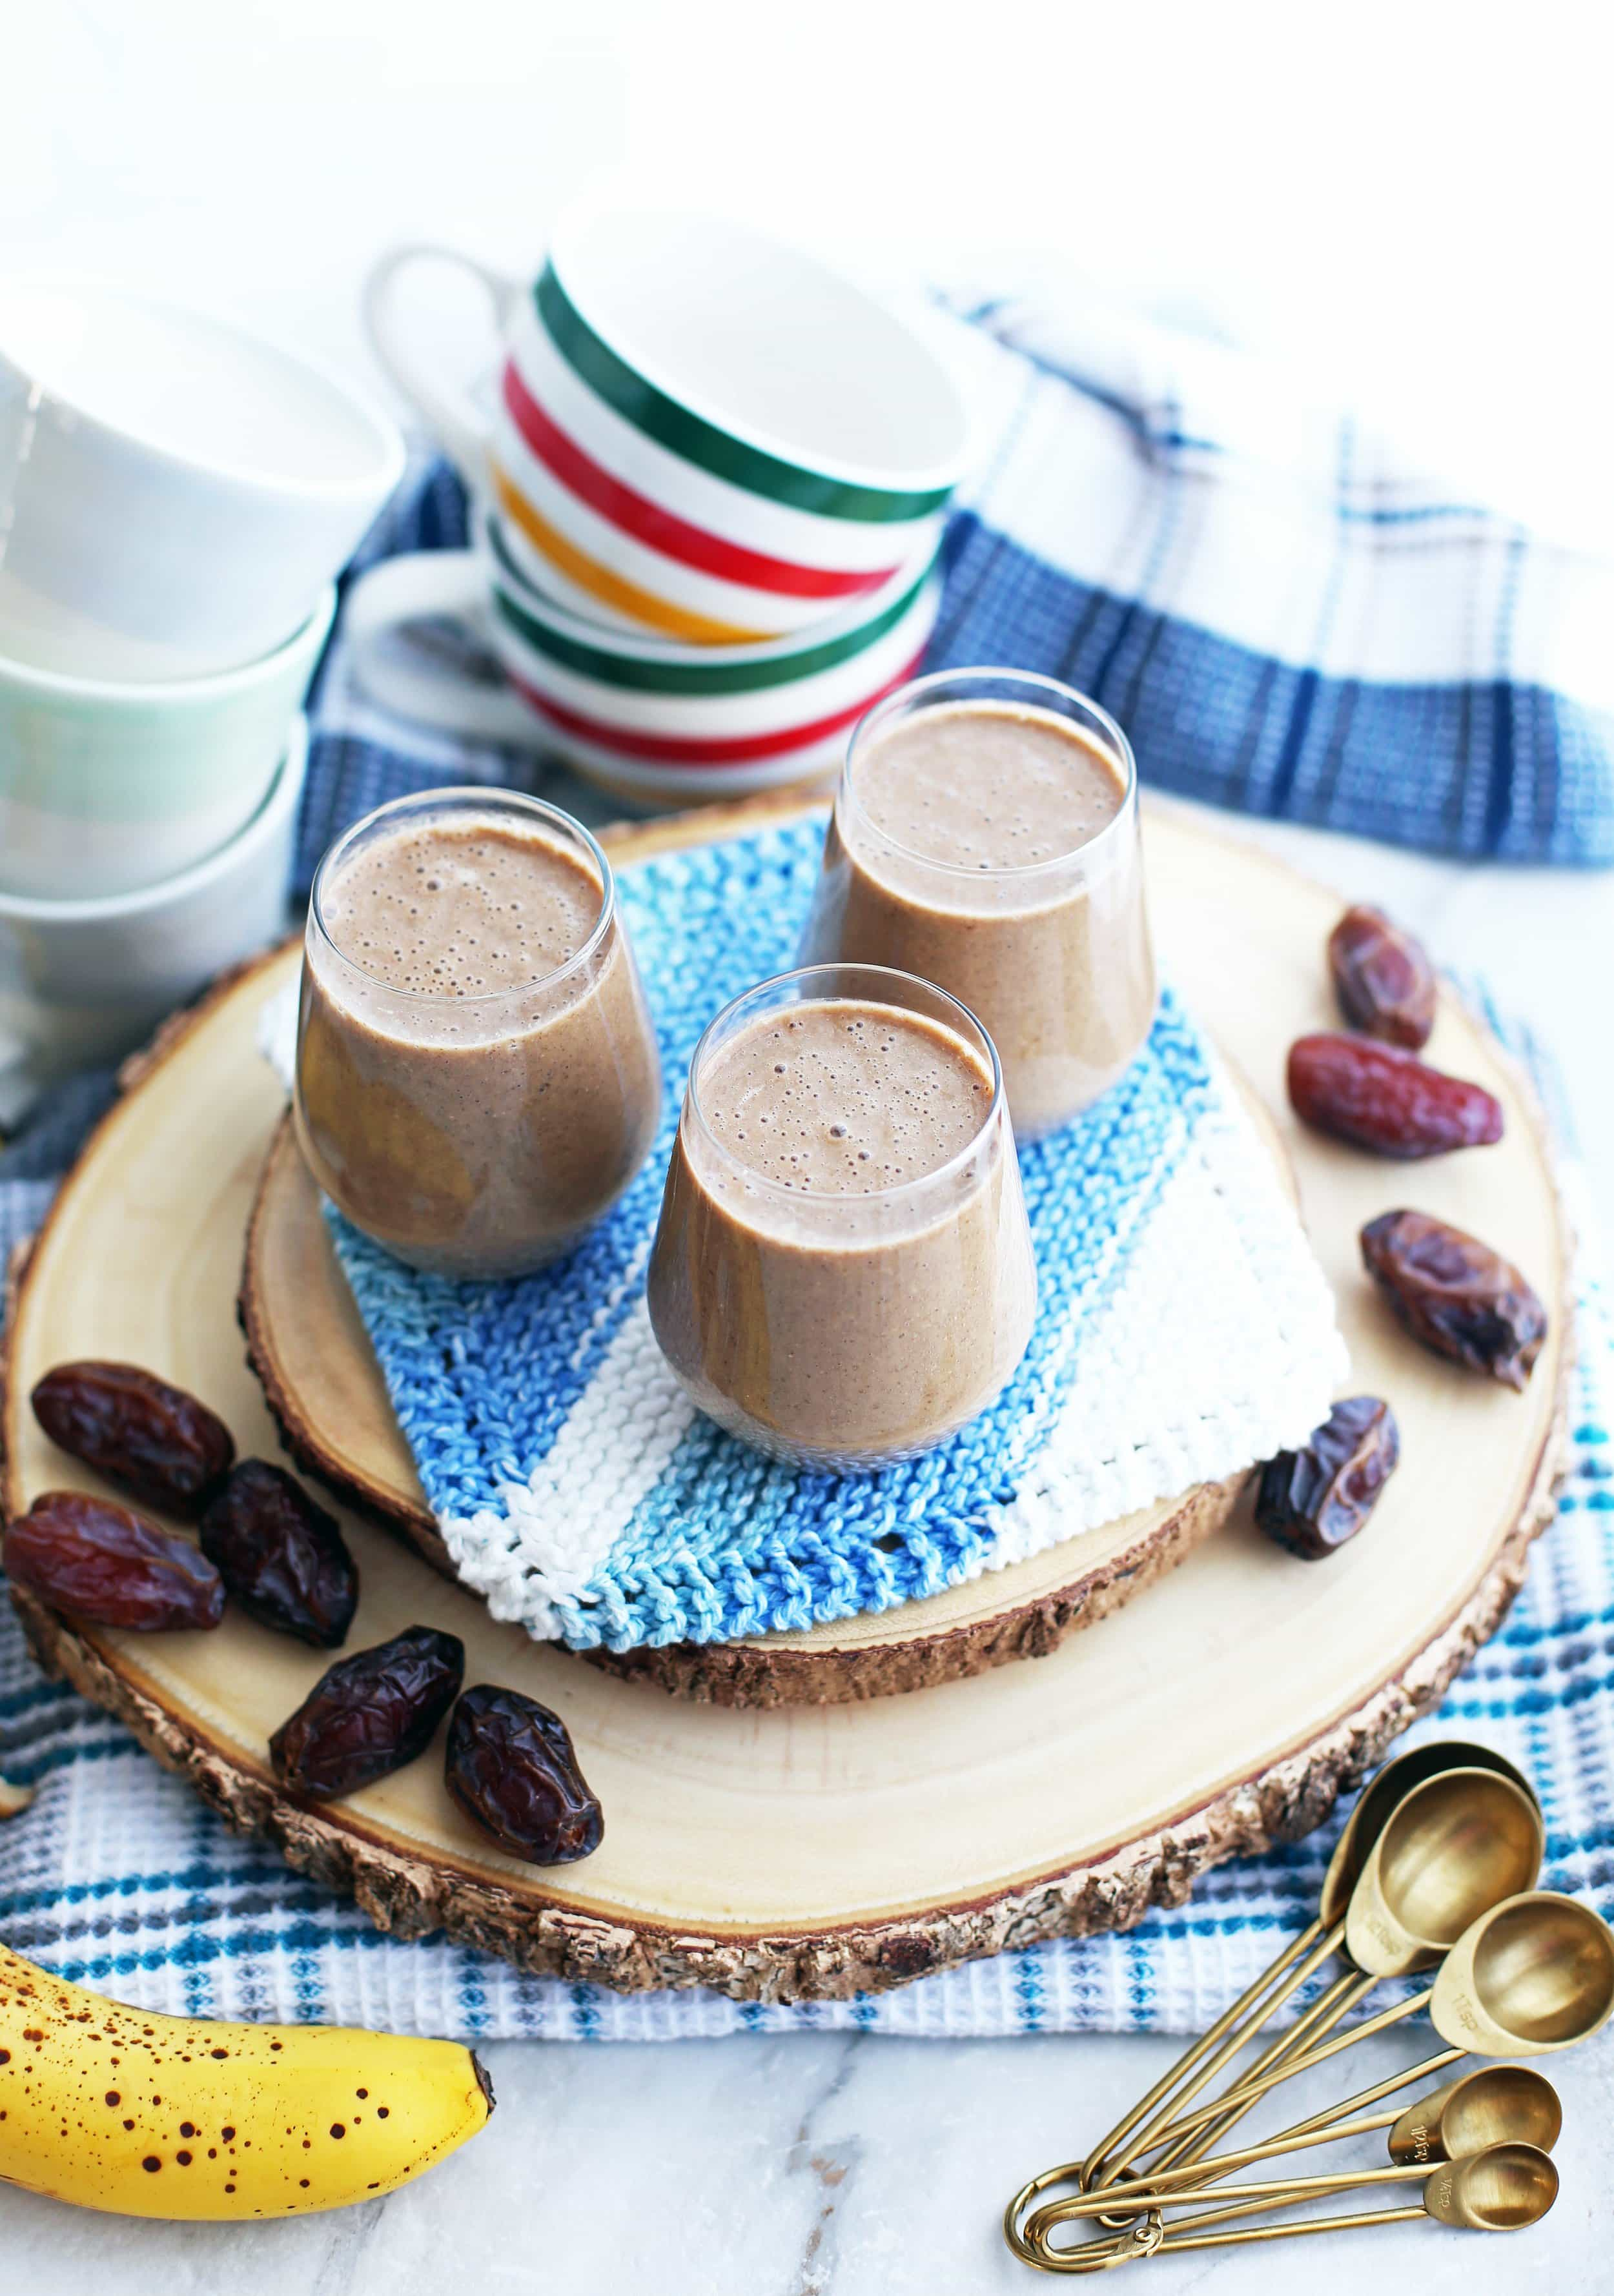 Three glasses of creamy date coffee breakfast smoothies on a wooden platter surrounded by medjool dates, measuring spoons, and coffee mugs.